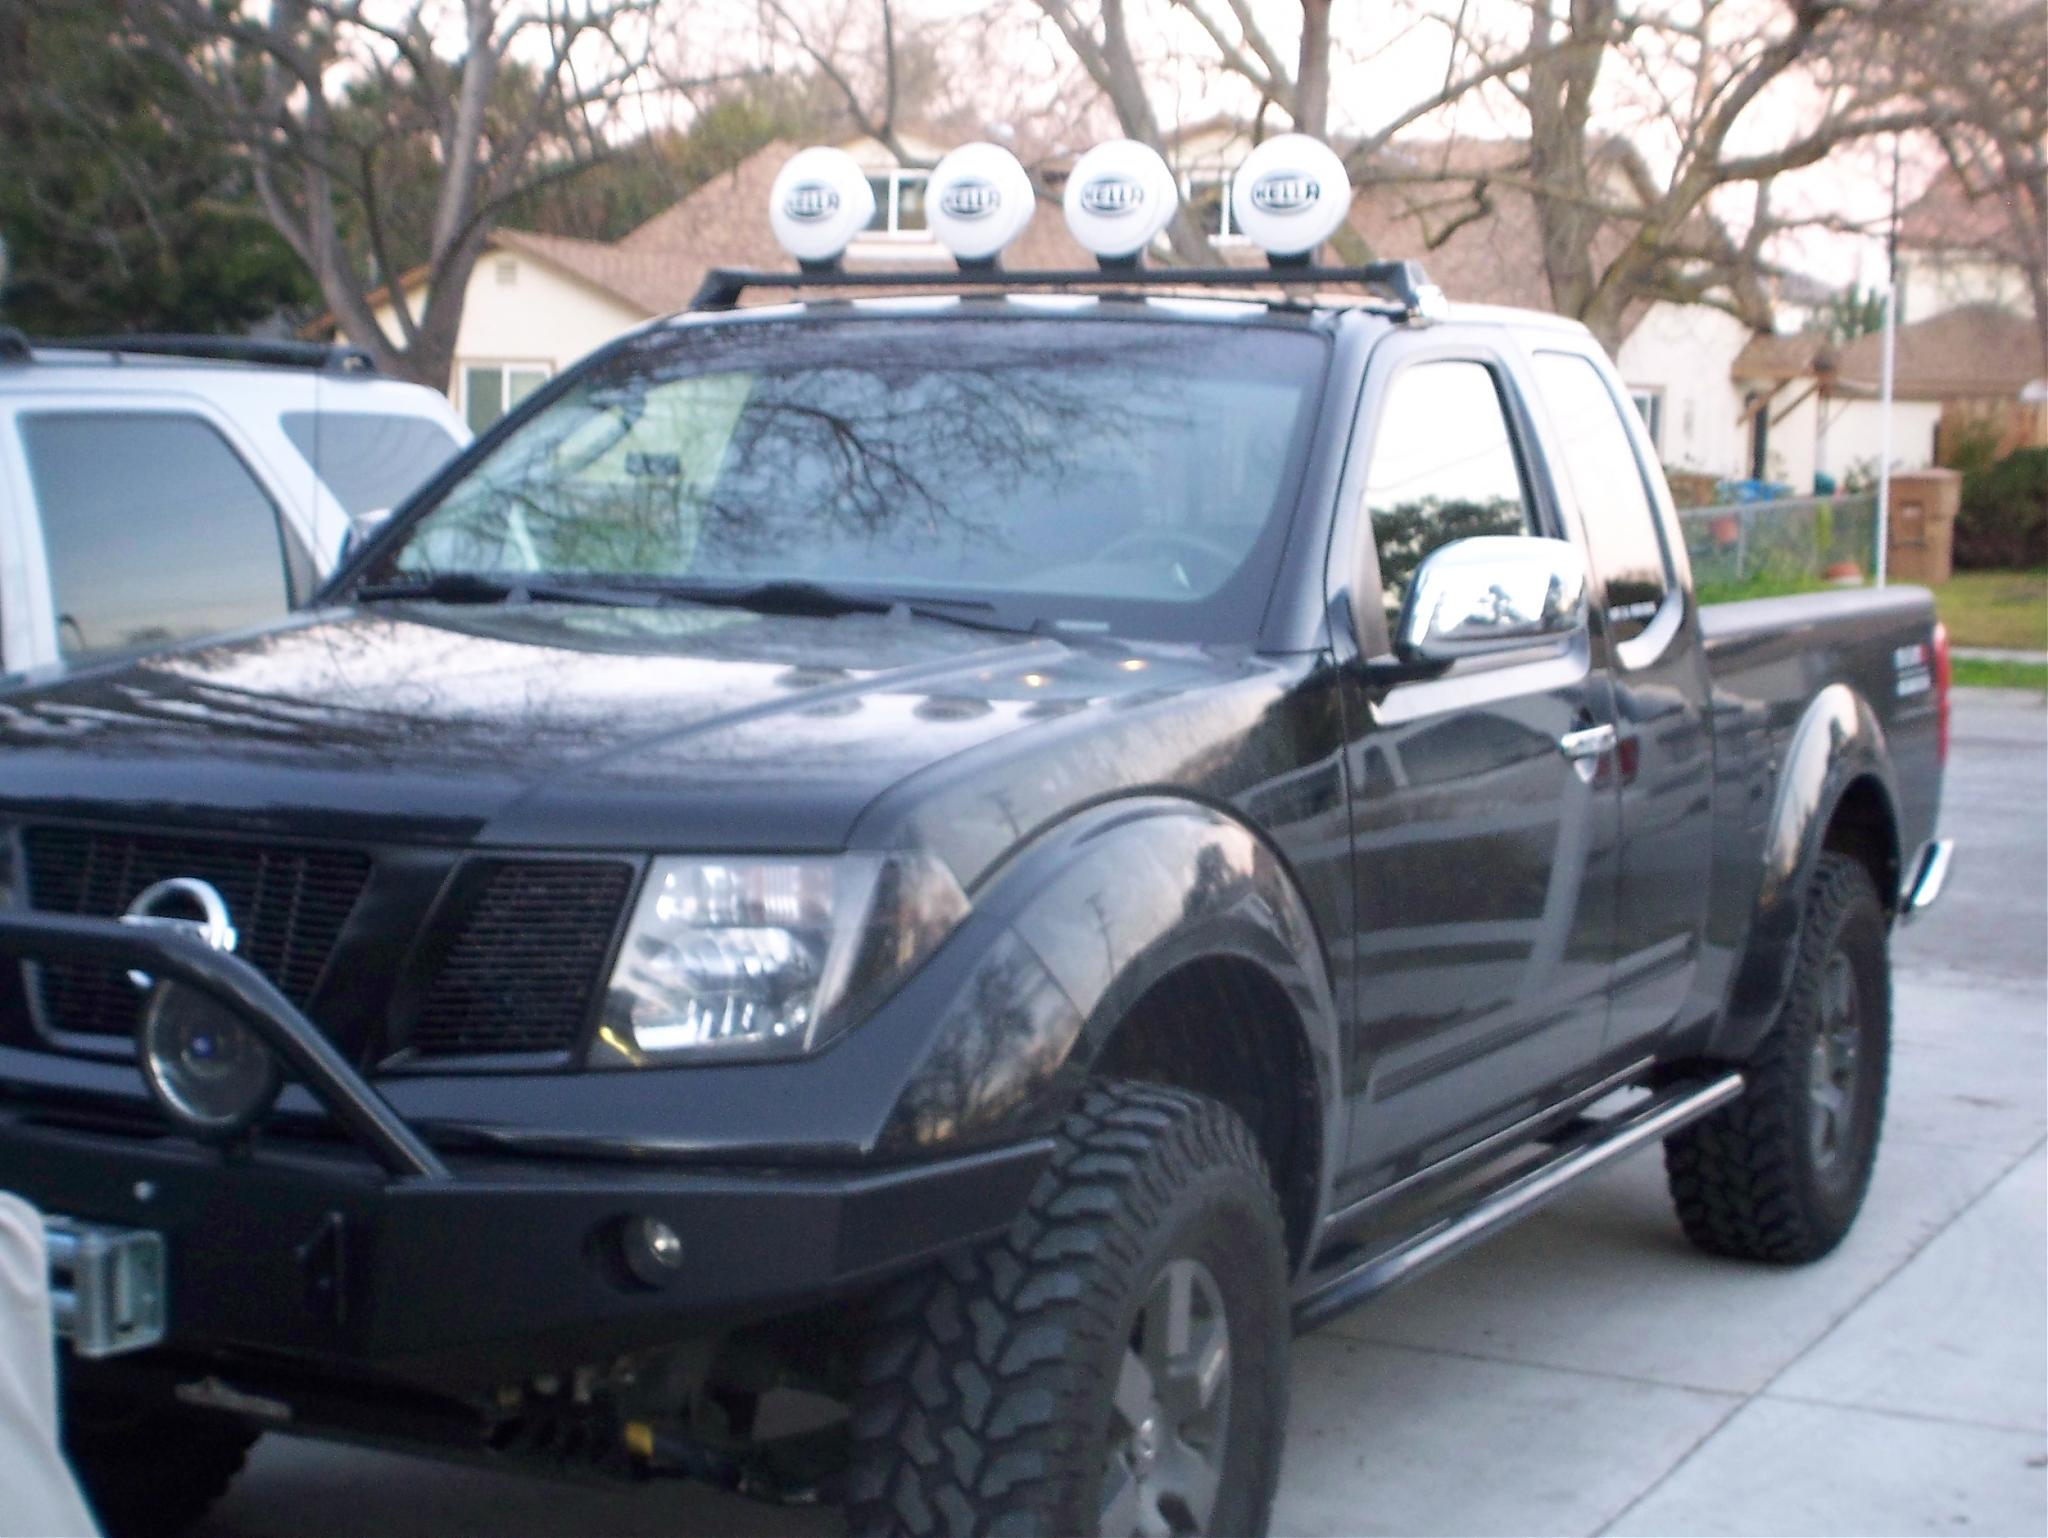 Roof light bar and 4 hella ff1000s installed nissan frontier forum aloadofball Choice Image